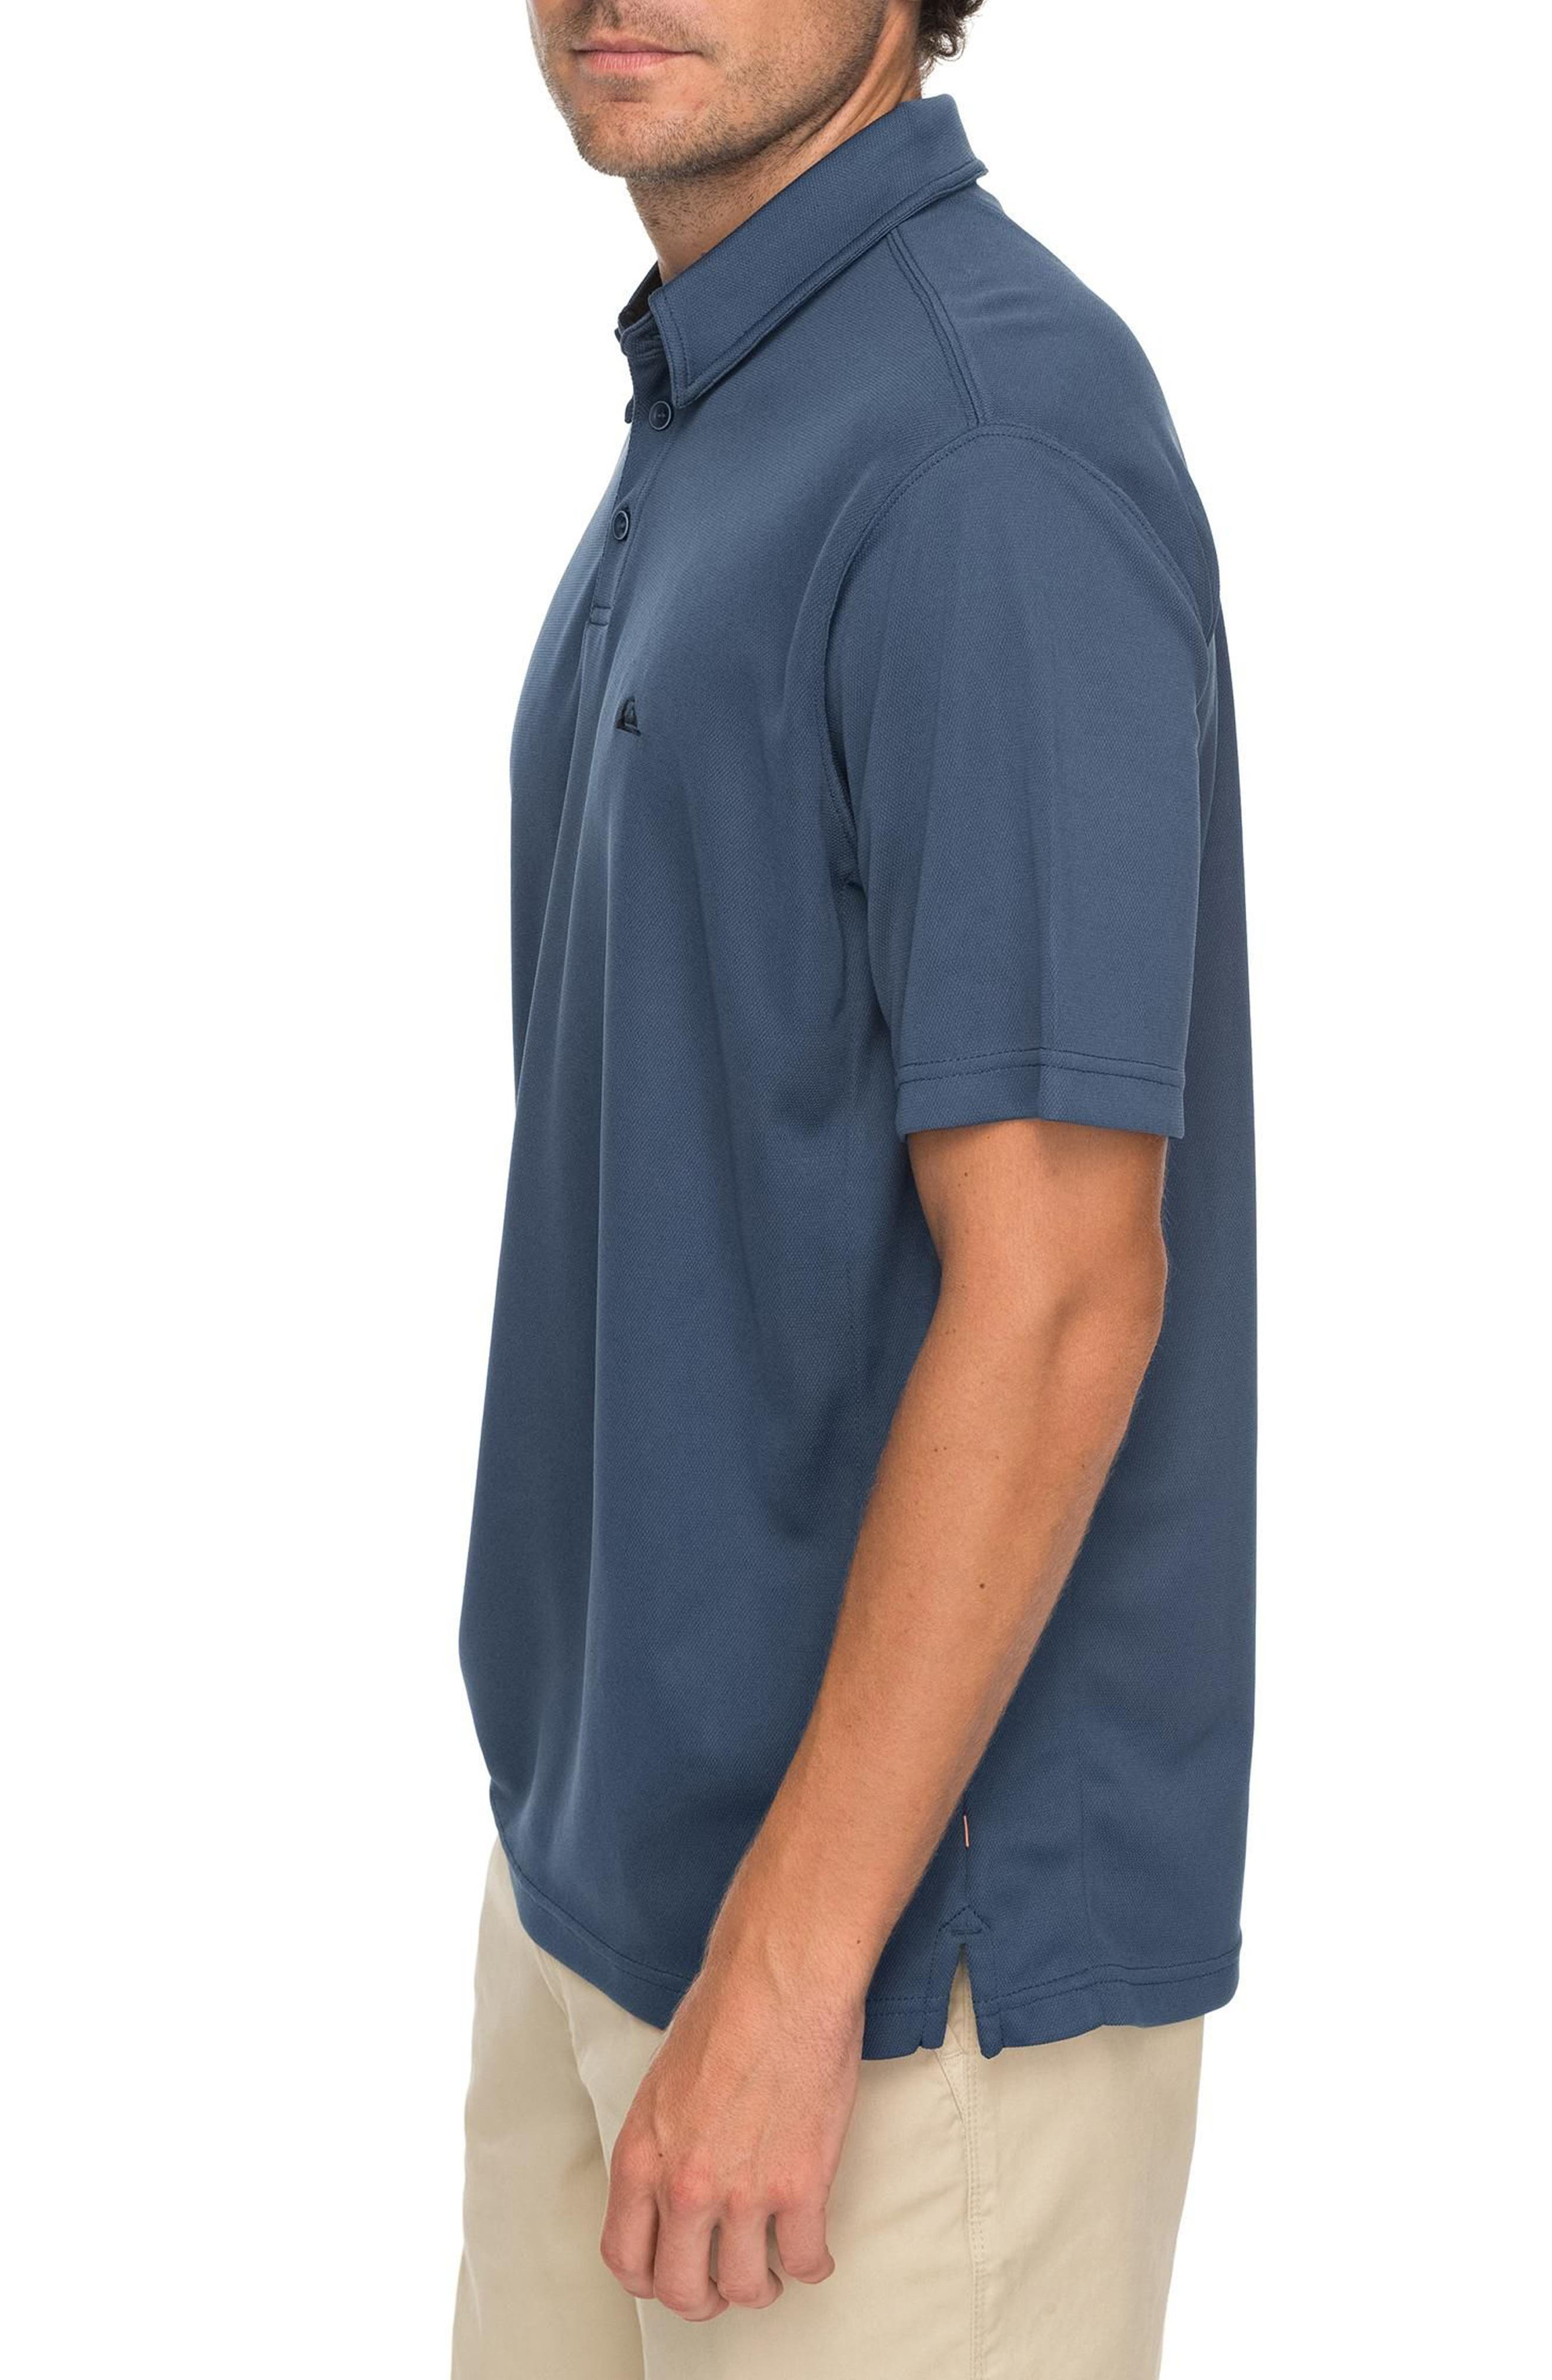 Main Image - Quiksilver Waterman Collection Water 2 Technical Polo Shirt